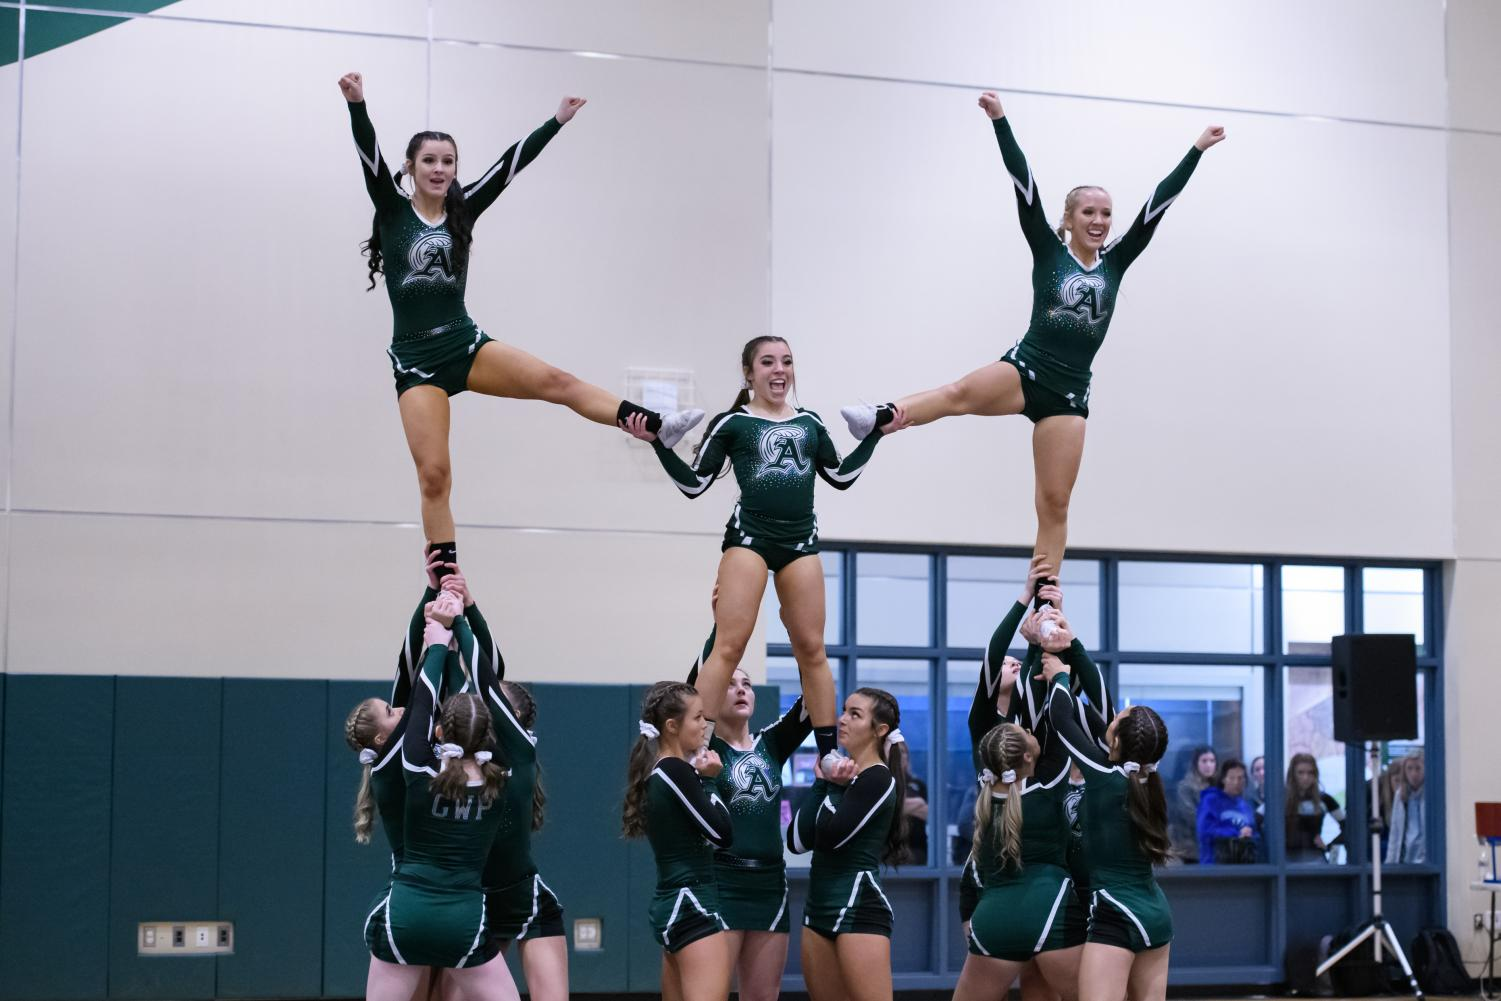 Junior+Carolyn+Doherty+%28left%29%2C+sophomore+Lindsay+Augusta+%28center%29%2C+and+junior+Leah+Kinniburgh+%28right%29%2C+fliers+with+Abington+High+School+cheer+perform+a+routine+on+Wednesday%2C+Nov.+6%2C+2019+in+the+Abington+Gym.